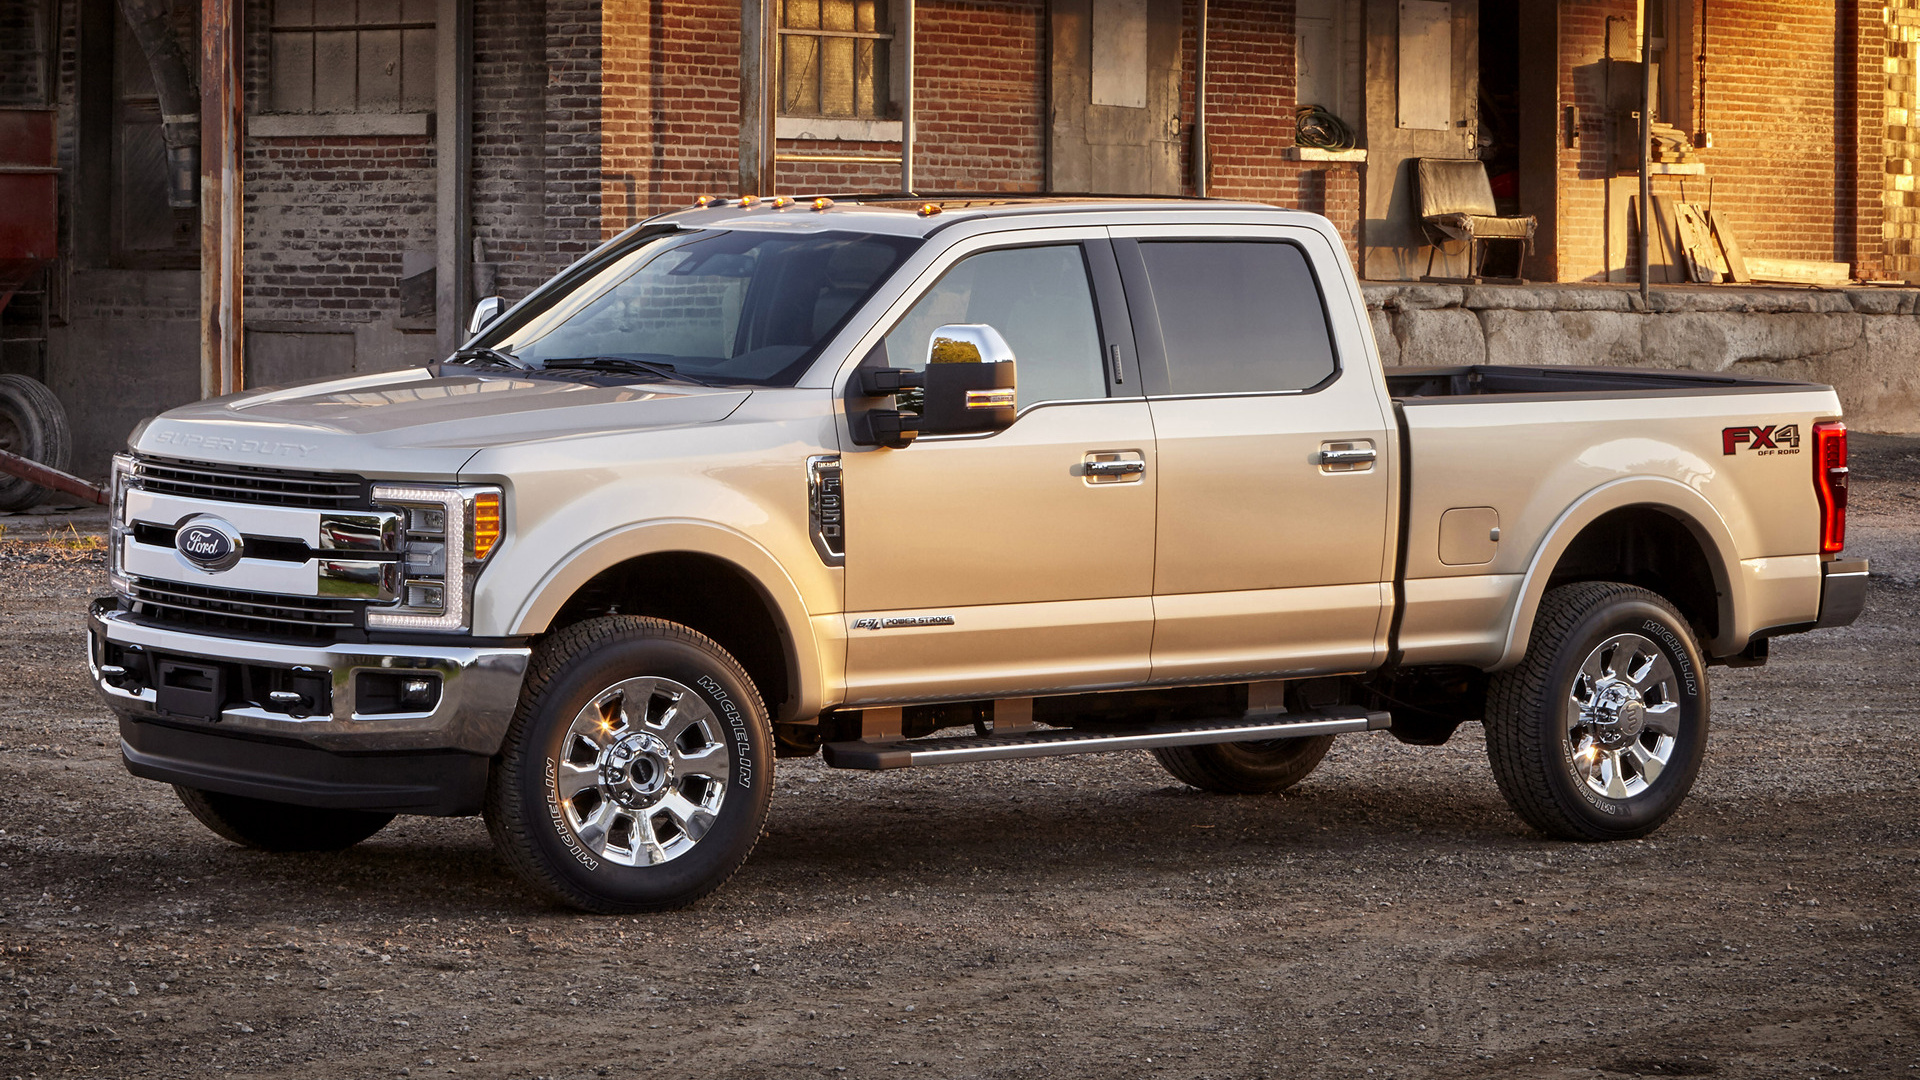 2017 Ford F Series Cabelas FX4 photo - 2